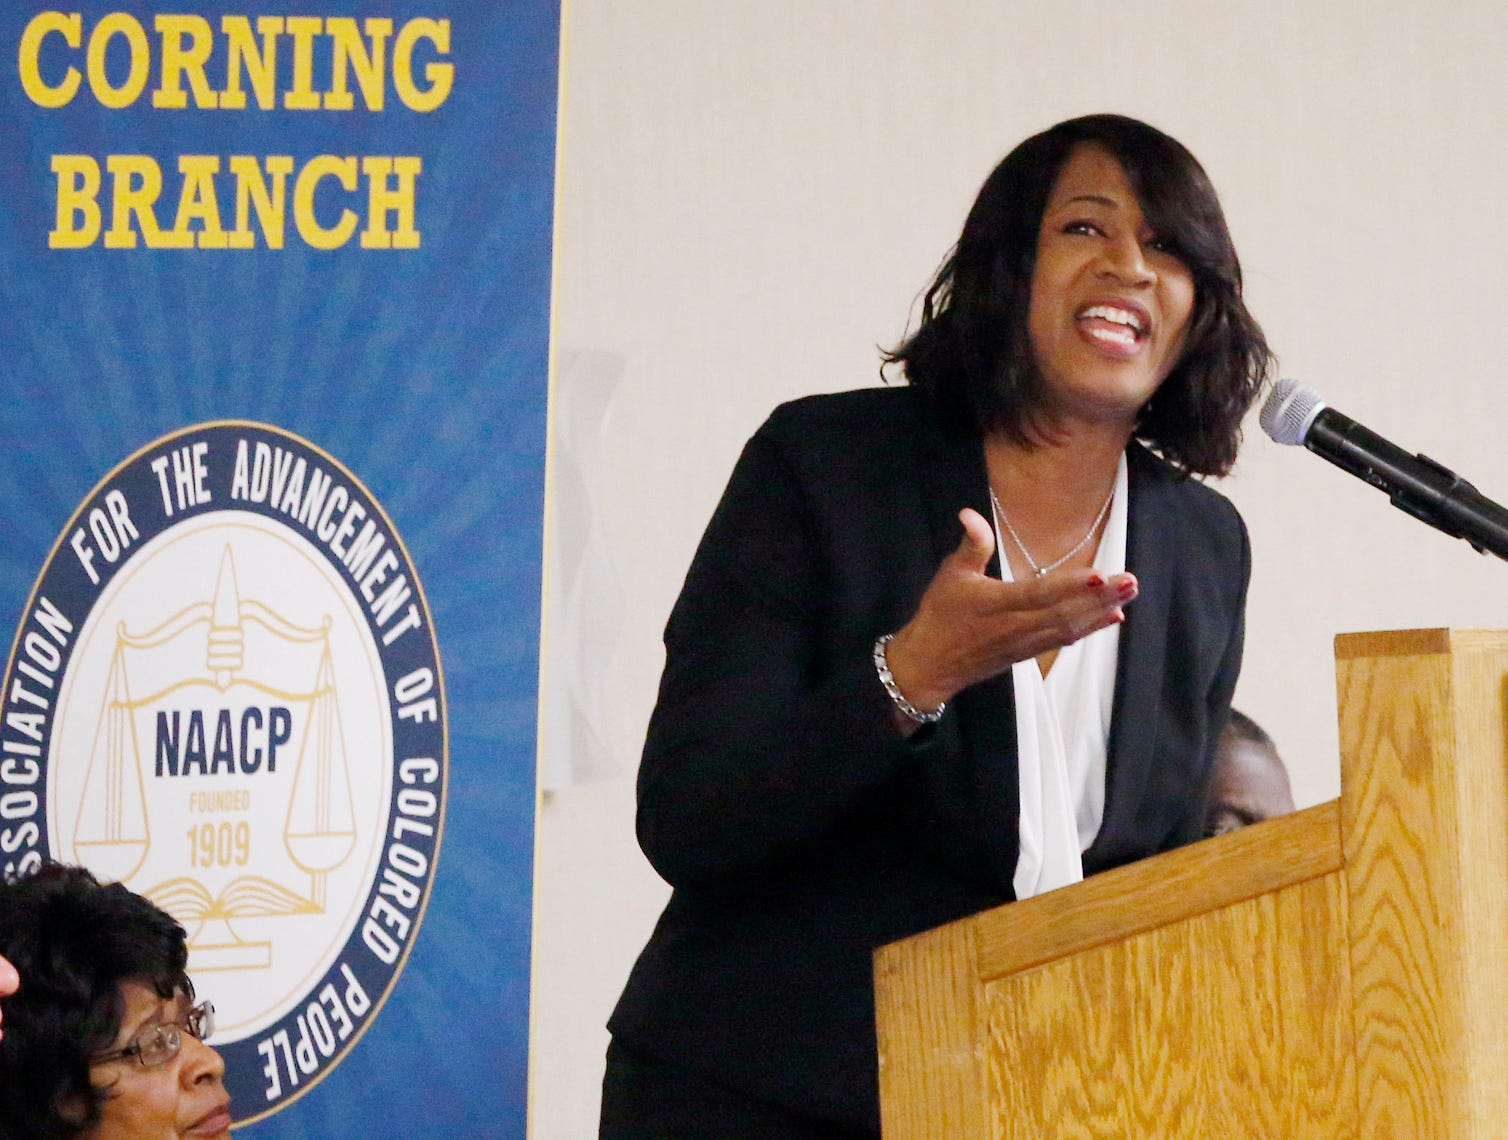 2016: The Rev. Lorri Thornton tells the audience that dreamers like Martin Luther King Jr. are possible in today's world, but they need to rise up and be restored. Thornton was the keynote speaker at Elmira Corning Branch of the National Association for the Advancement of Colored People and the Black Technology Network's MLK breakfast Saturday at the Radisson Hotel in Corning.